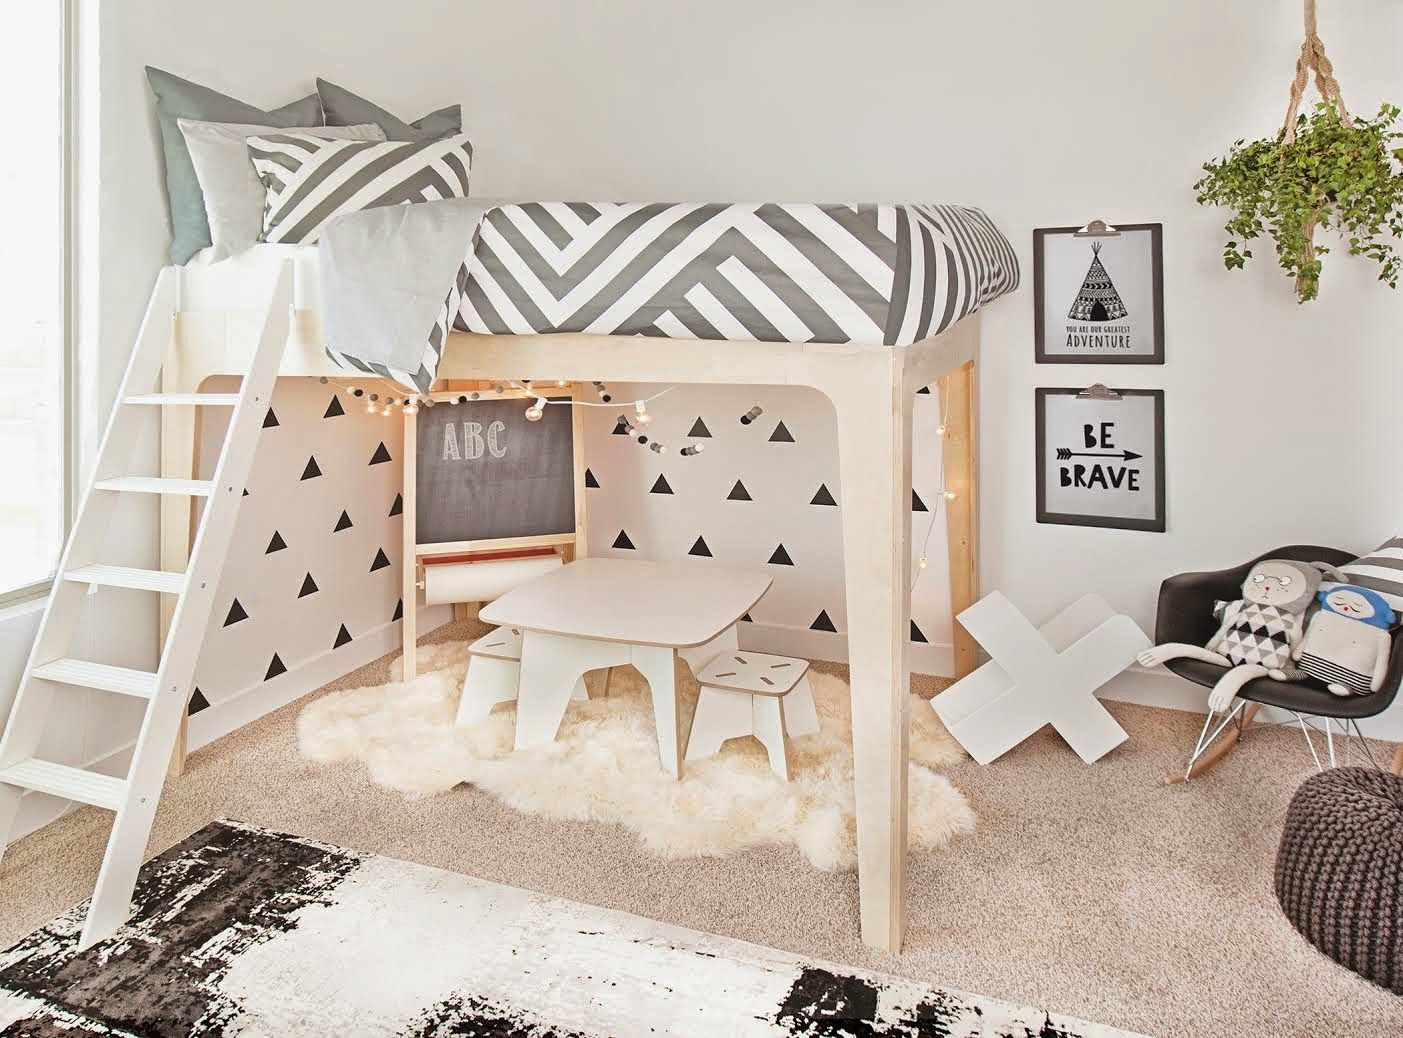 hanes 39 room reveal cara loren kinderzimmer pinterest sch ne teppiche teppiche und. Black Bedroom Furniture Sets. Home Design Ideas